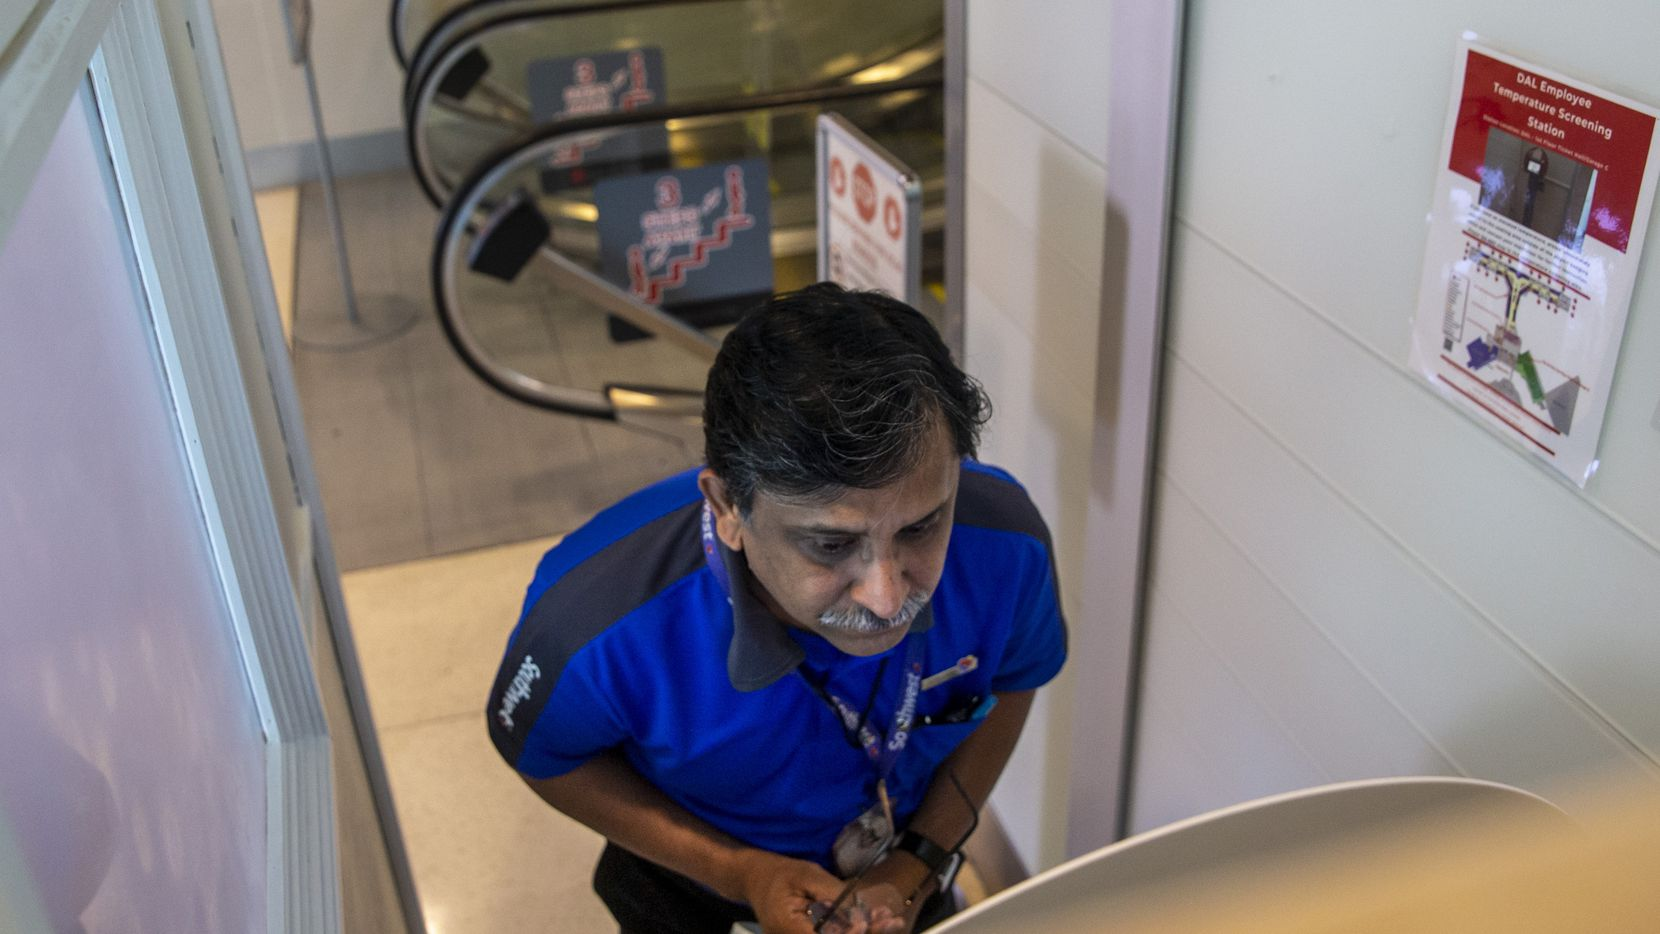 Southwest Airlines customer service supervisor Arshad Khan goes through a temperature check at a Wello thermal imaging kiosk at an employee screening station at Dallas Love Field.